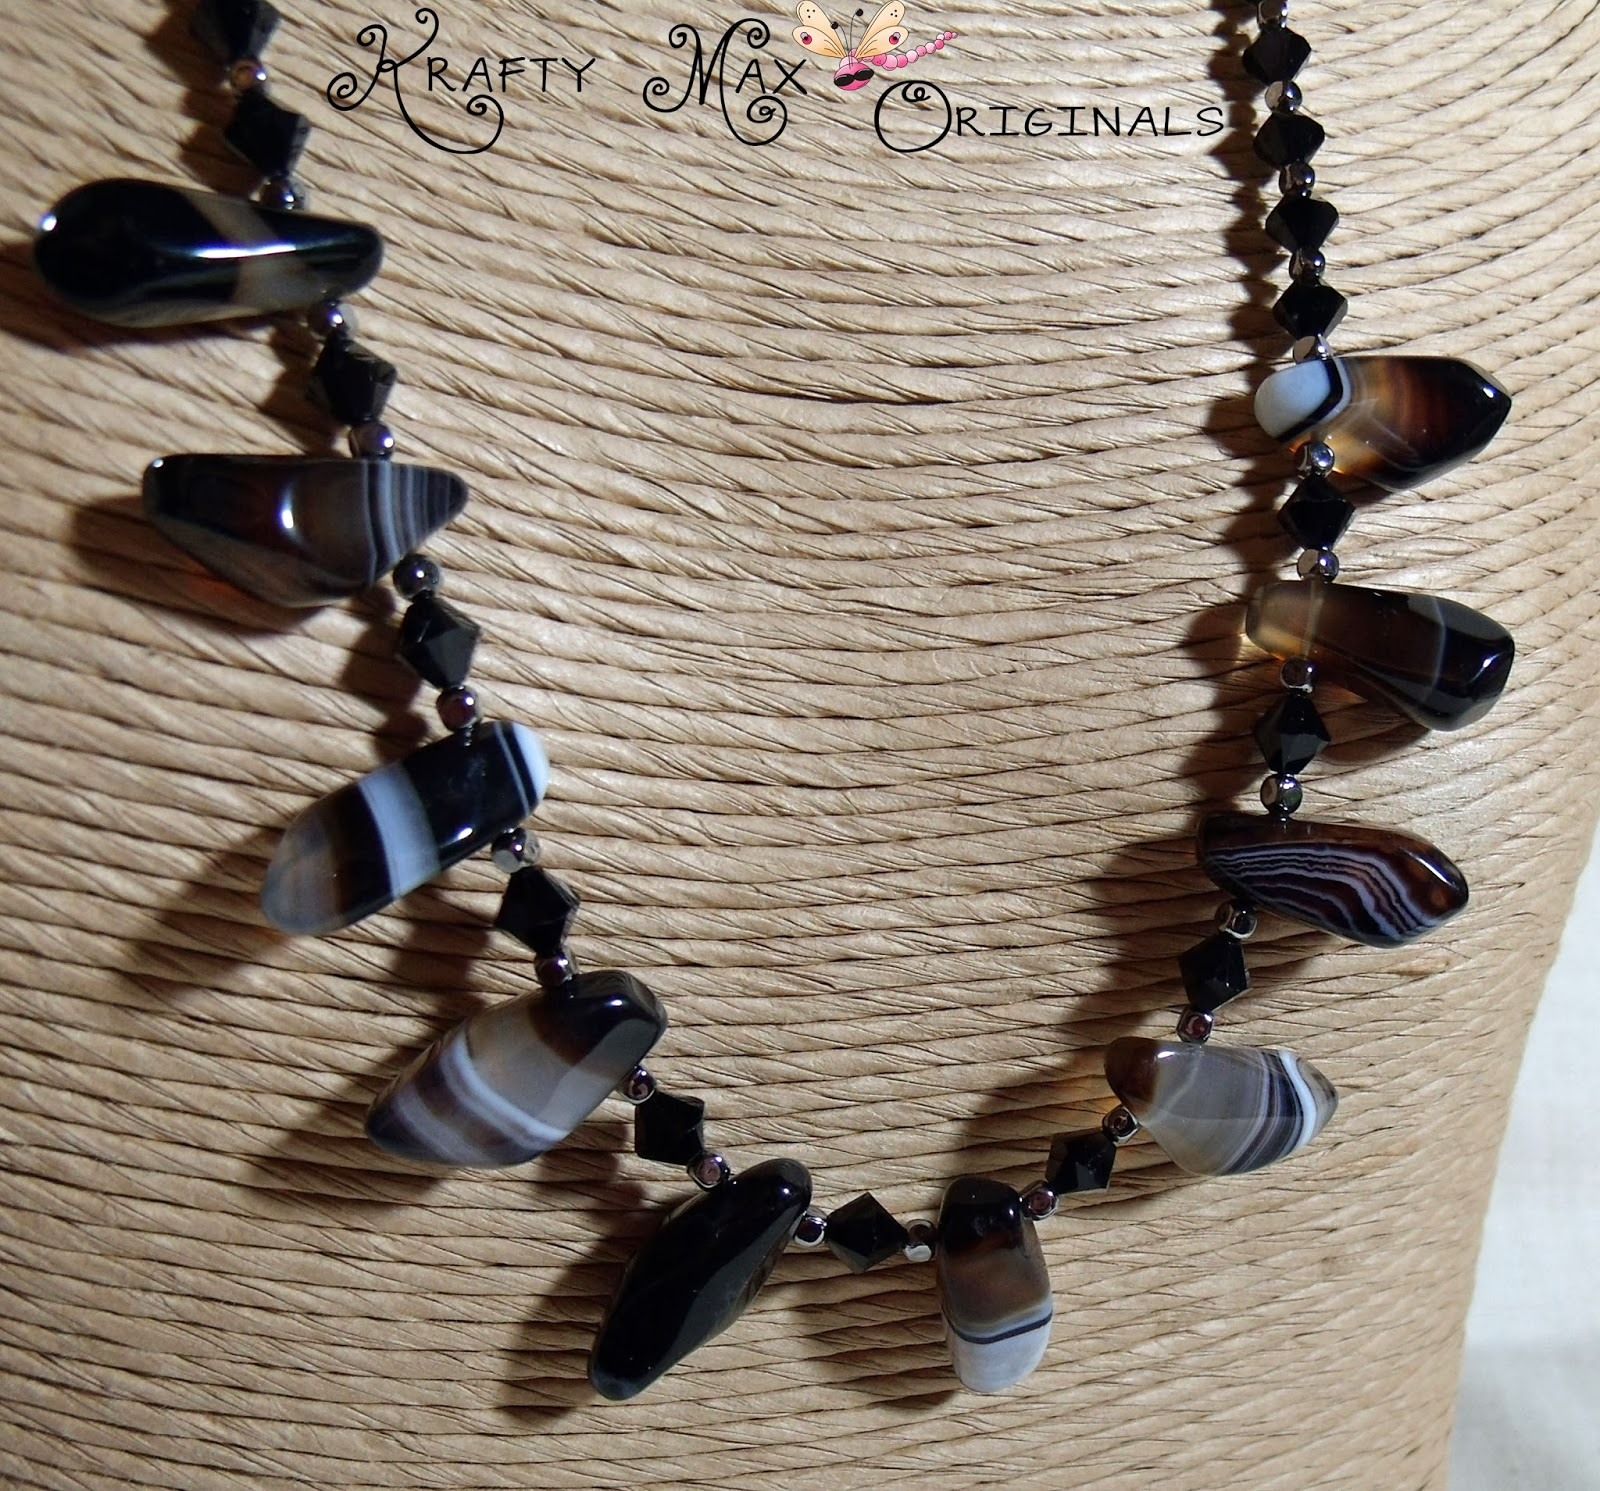 http://www.lajuliet.com/index.php/2013-01-04-15-21-51/ad/gemstone,92/exclusive-black-banded-agate-and-swarovski-crystals-necklace-set-a-krafty-max-original-design,128